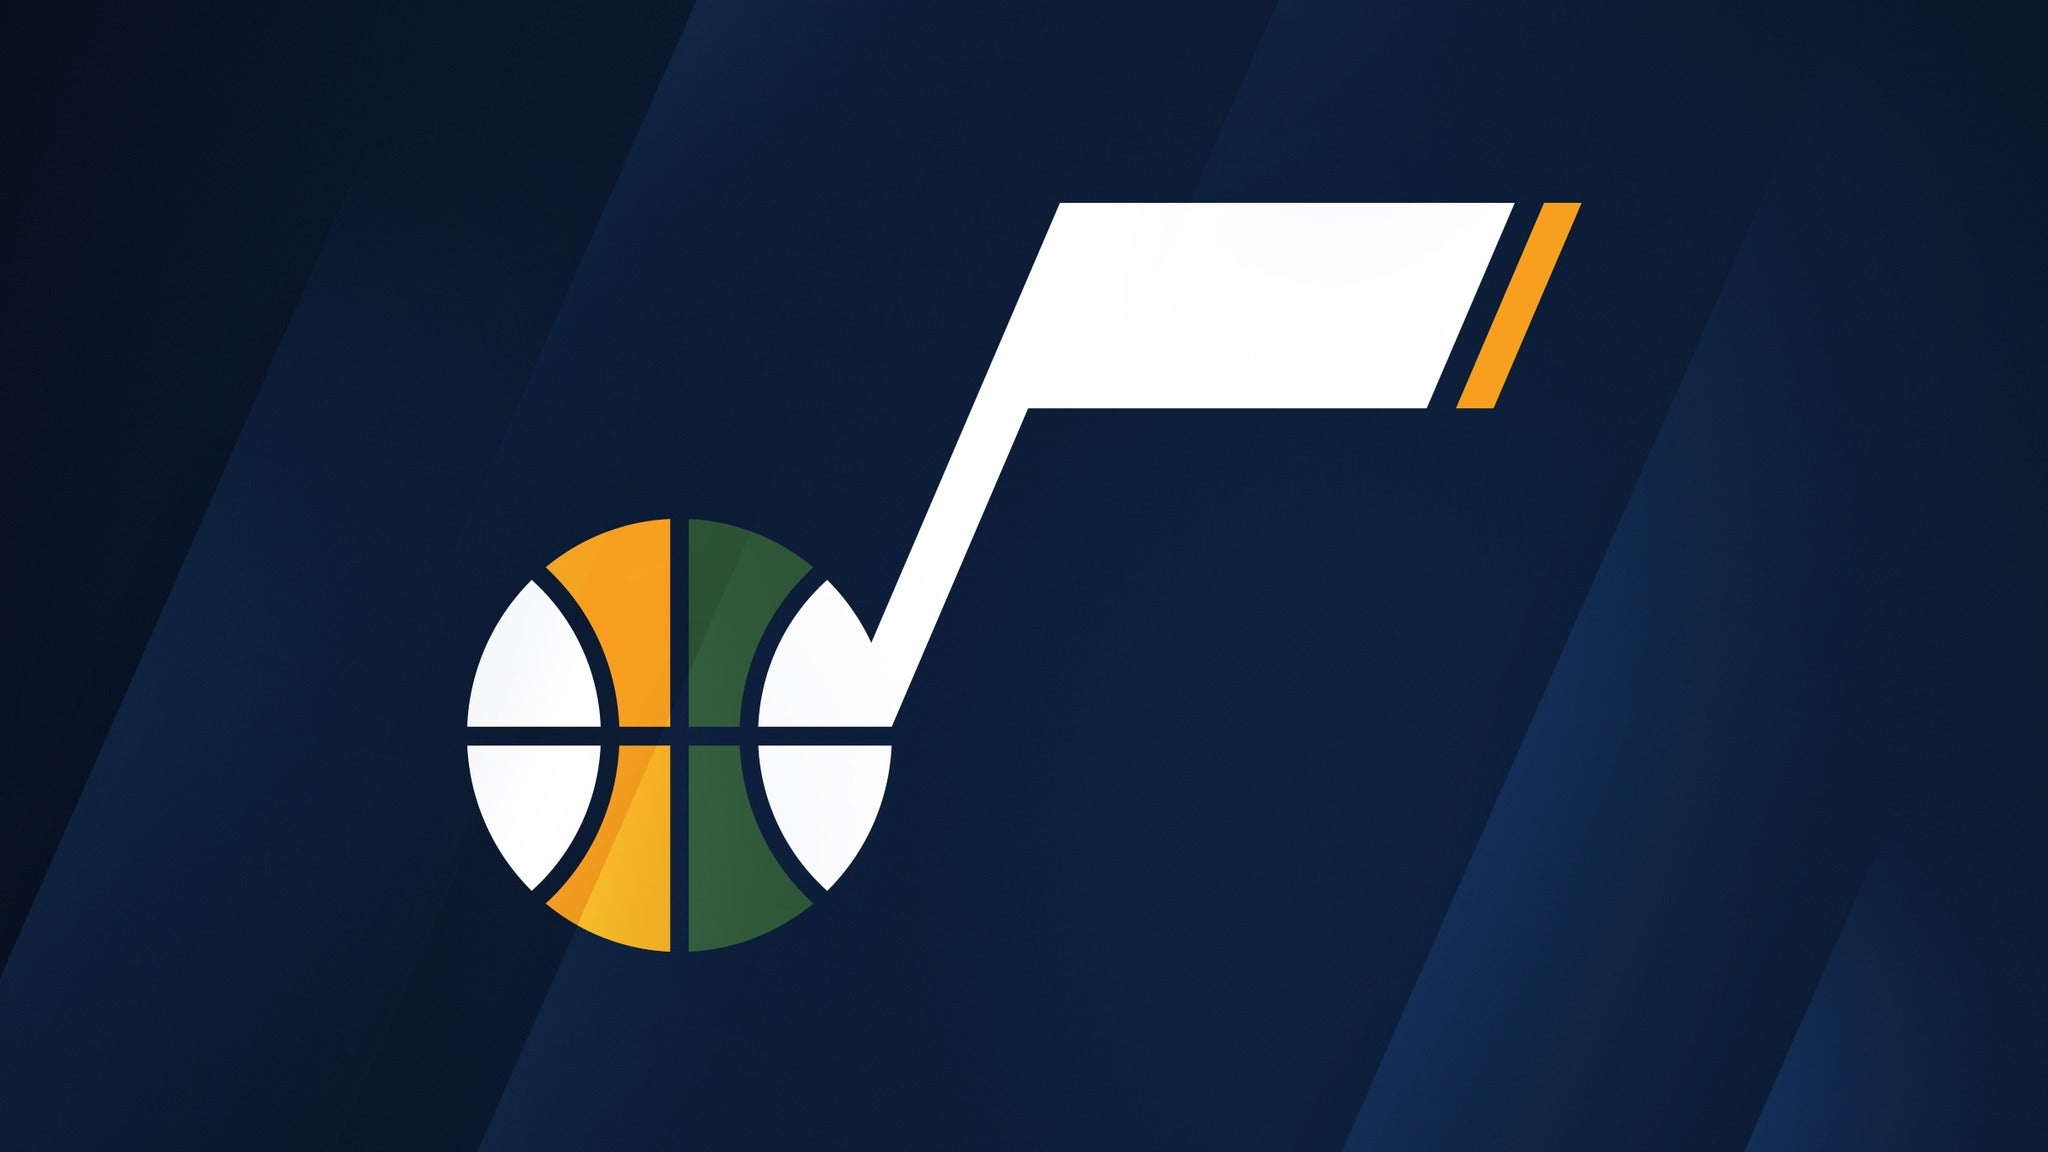 Utah Jazz vs. Sacramento Kings at Vivint Smart Home Arena